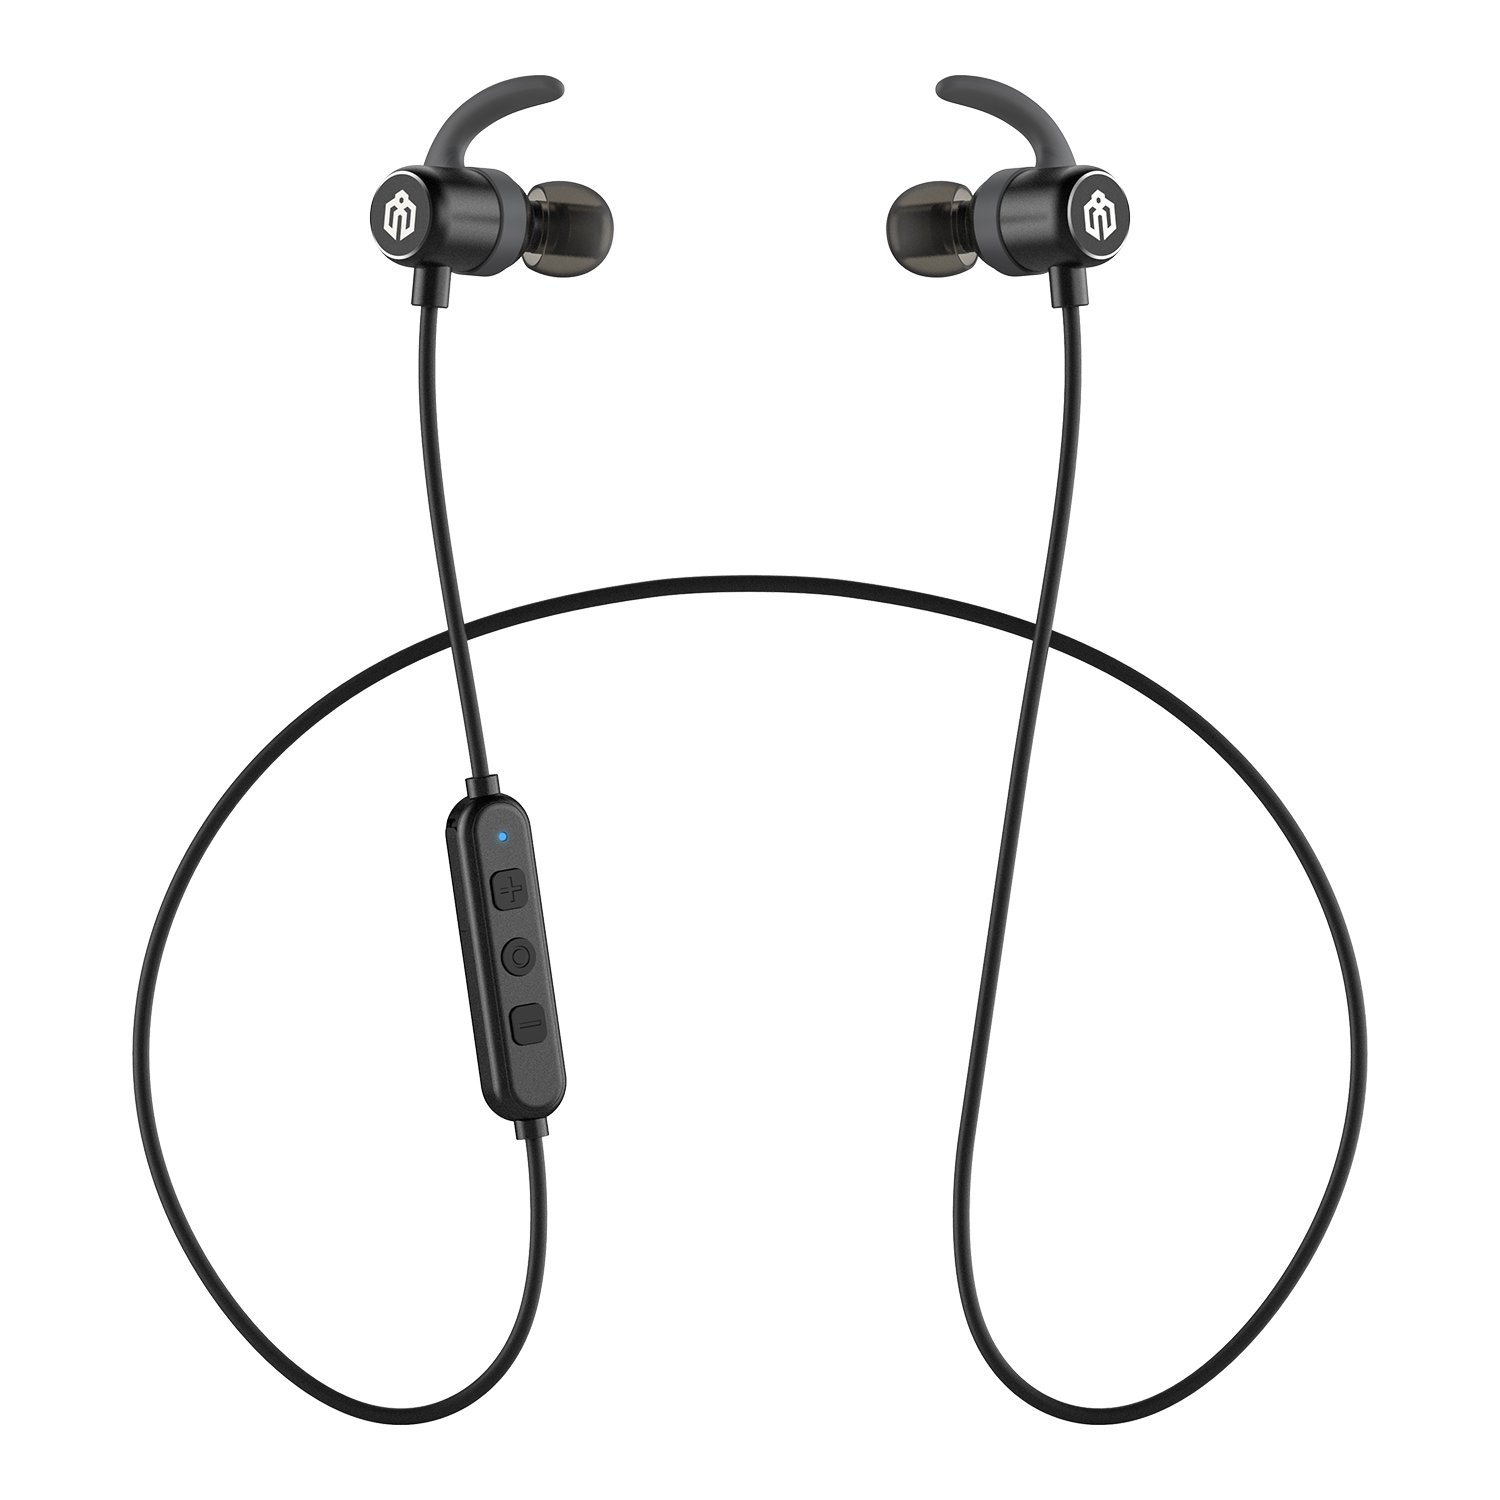 iClever Bluetooth Headphones In Ear, Wireless Earbuds with Stereo Music, 10 HOURS Playtime, Magnetic Connection, CVC 6.0 Noise Cancelling, Waterproof Sports Headphones for iPhone 8 - Black by iClever